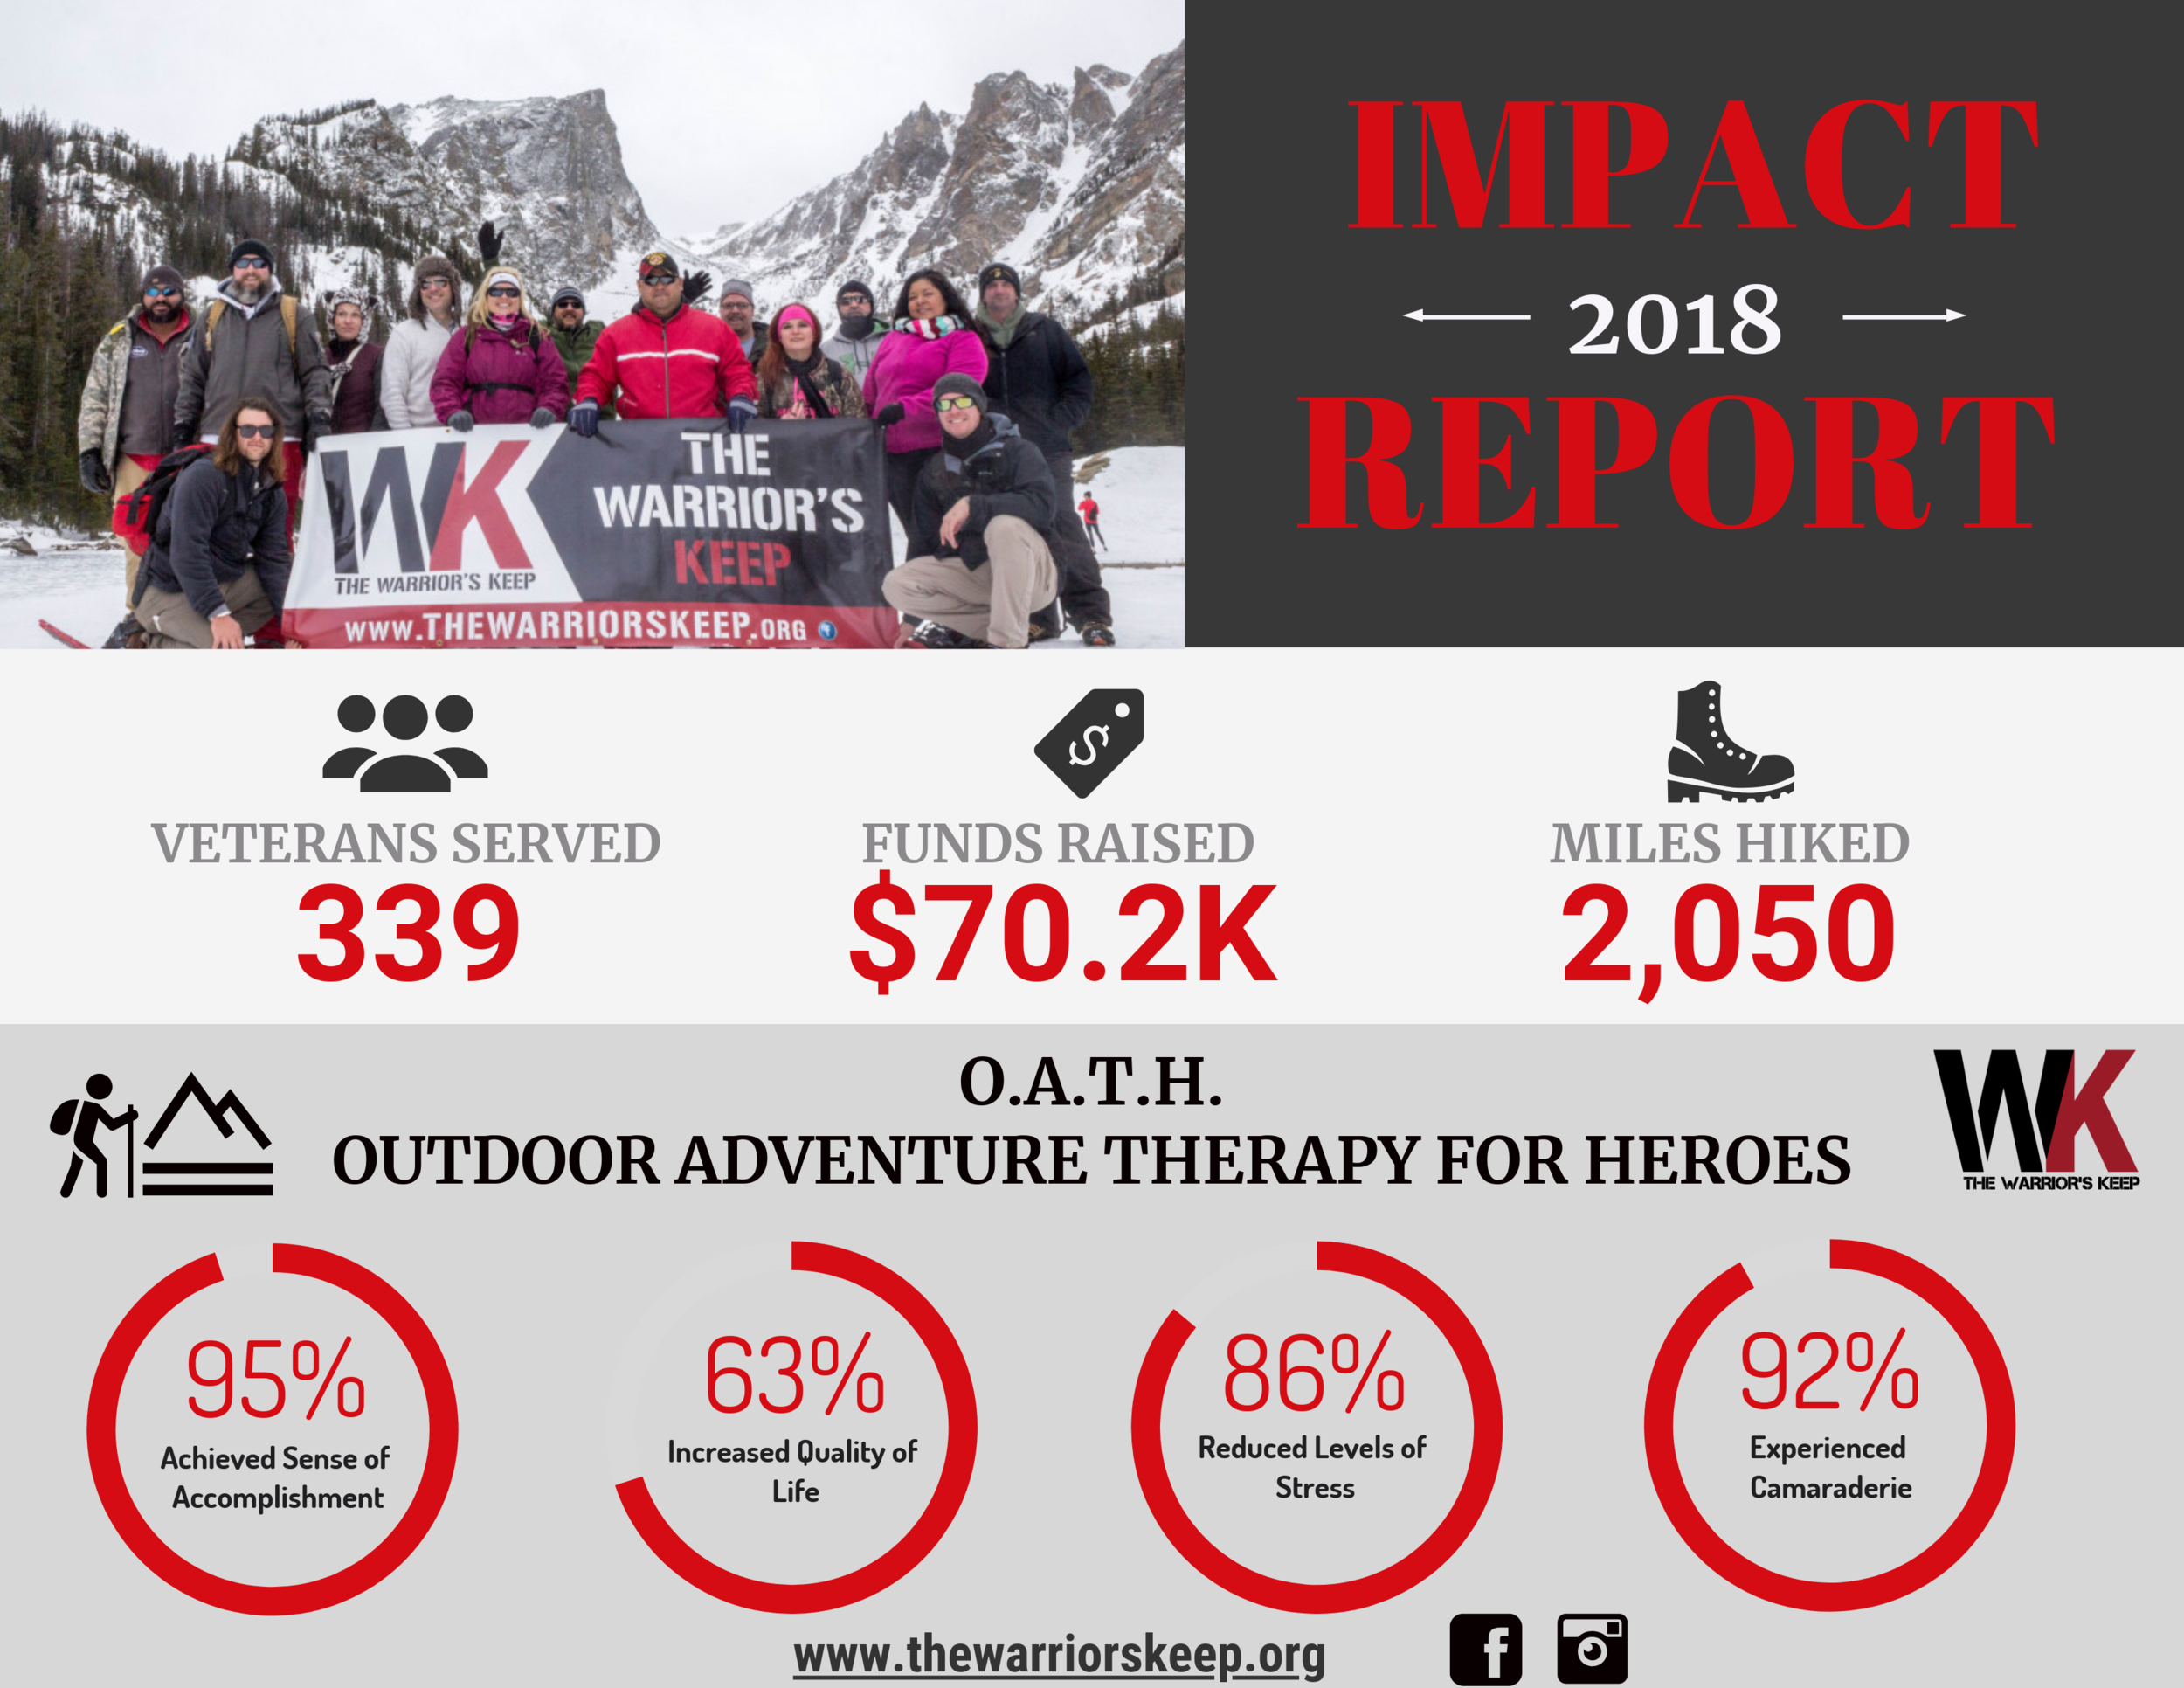 The Warrior's Keep 2018 Impact Report